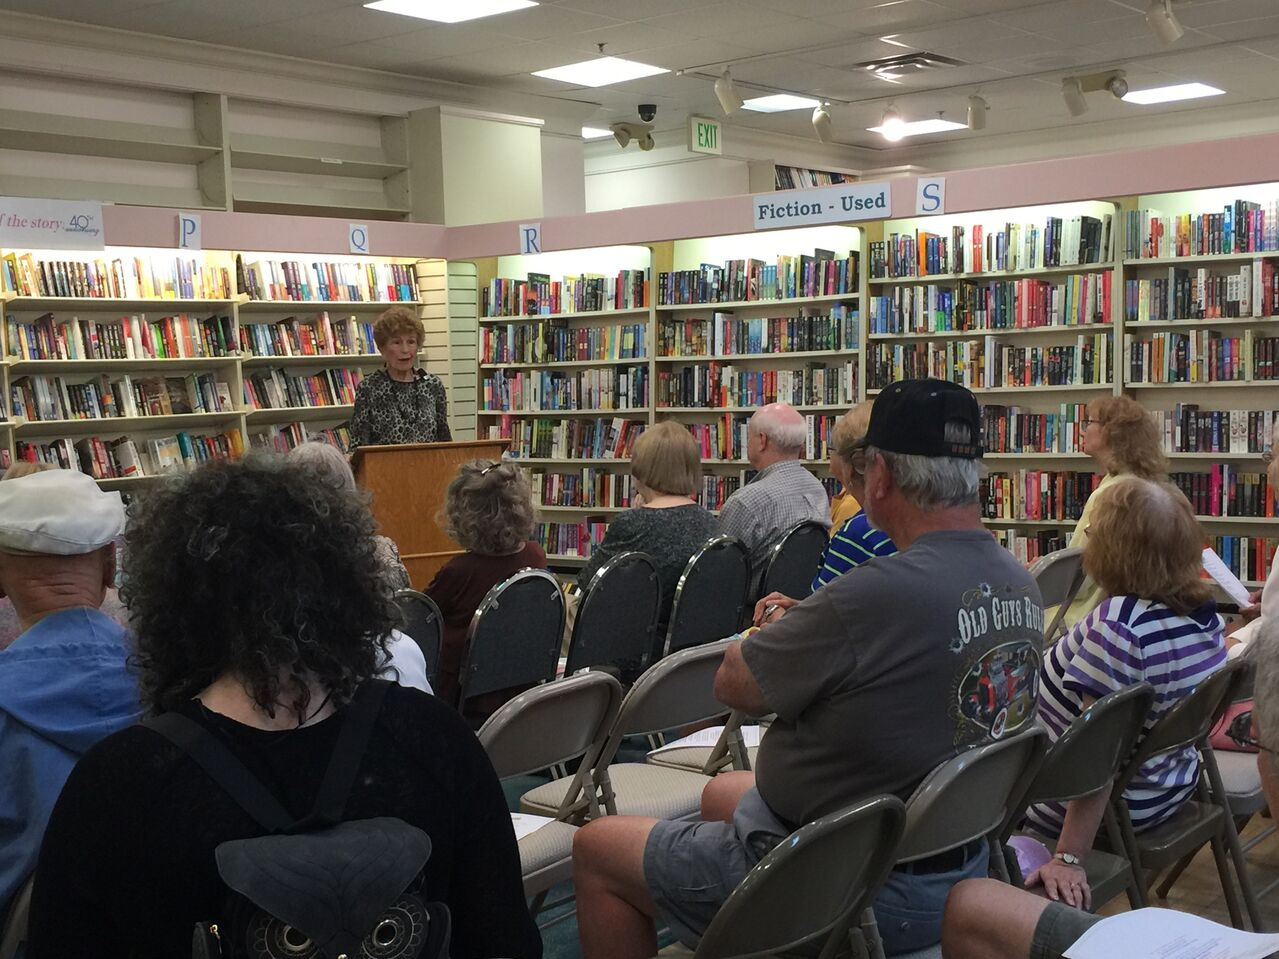 Suzan Phillips speaks about McKee Botanical Garden at the Vero Beach Book Center during a book signing.